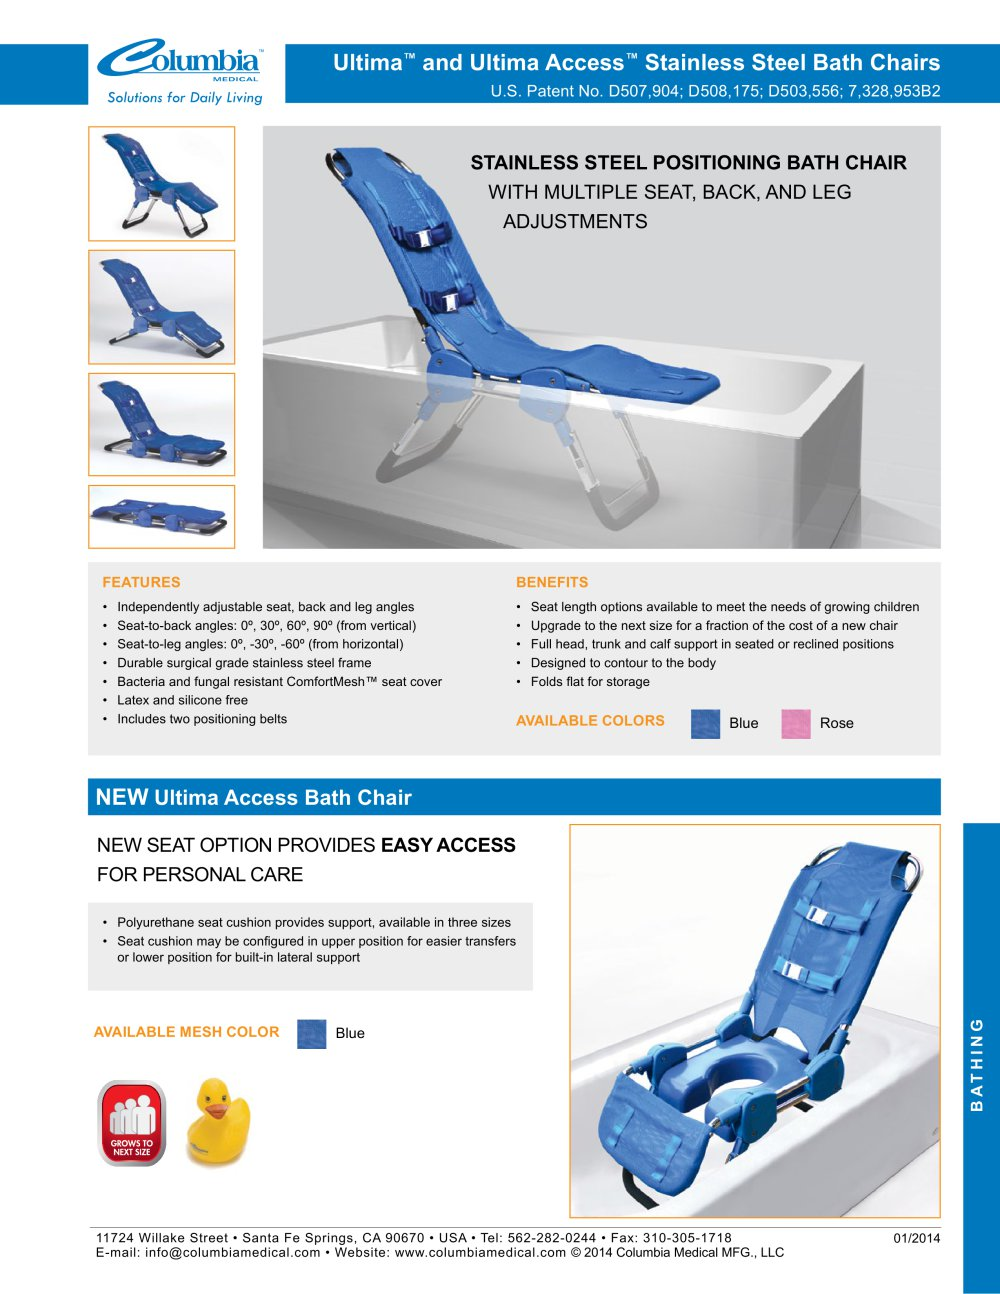 columbia medical bath chair folding auction ultima and access stainless steel chairs inspired 1 2 pages